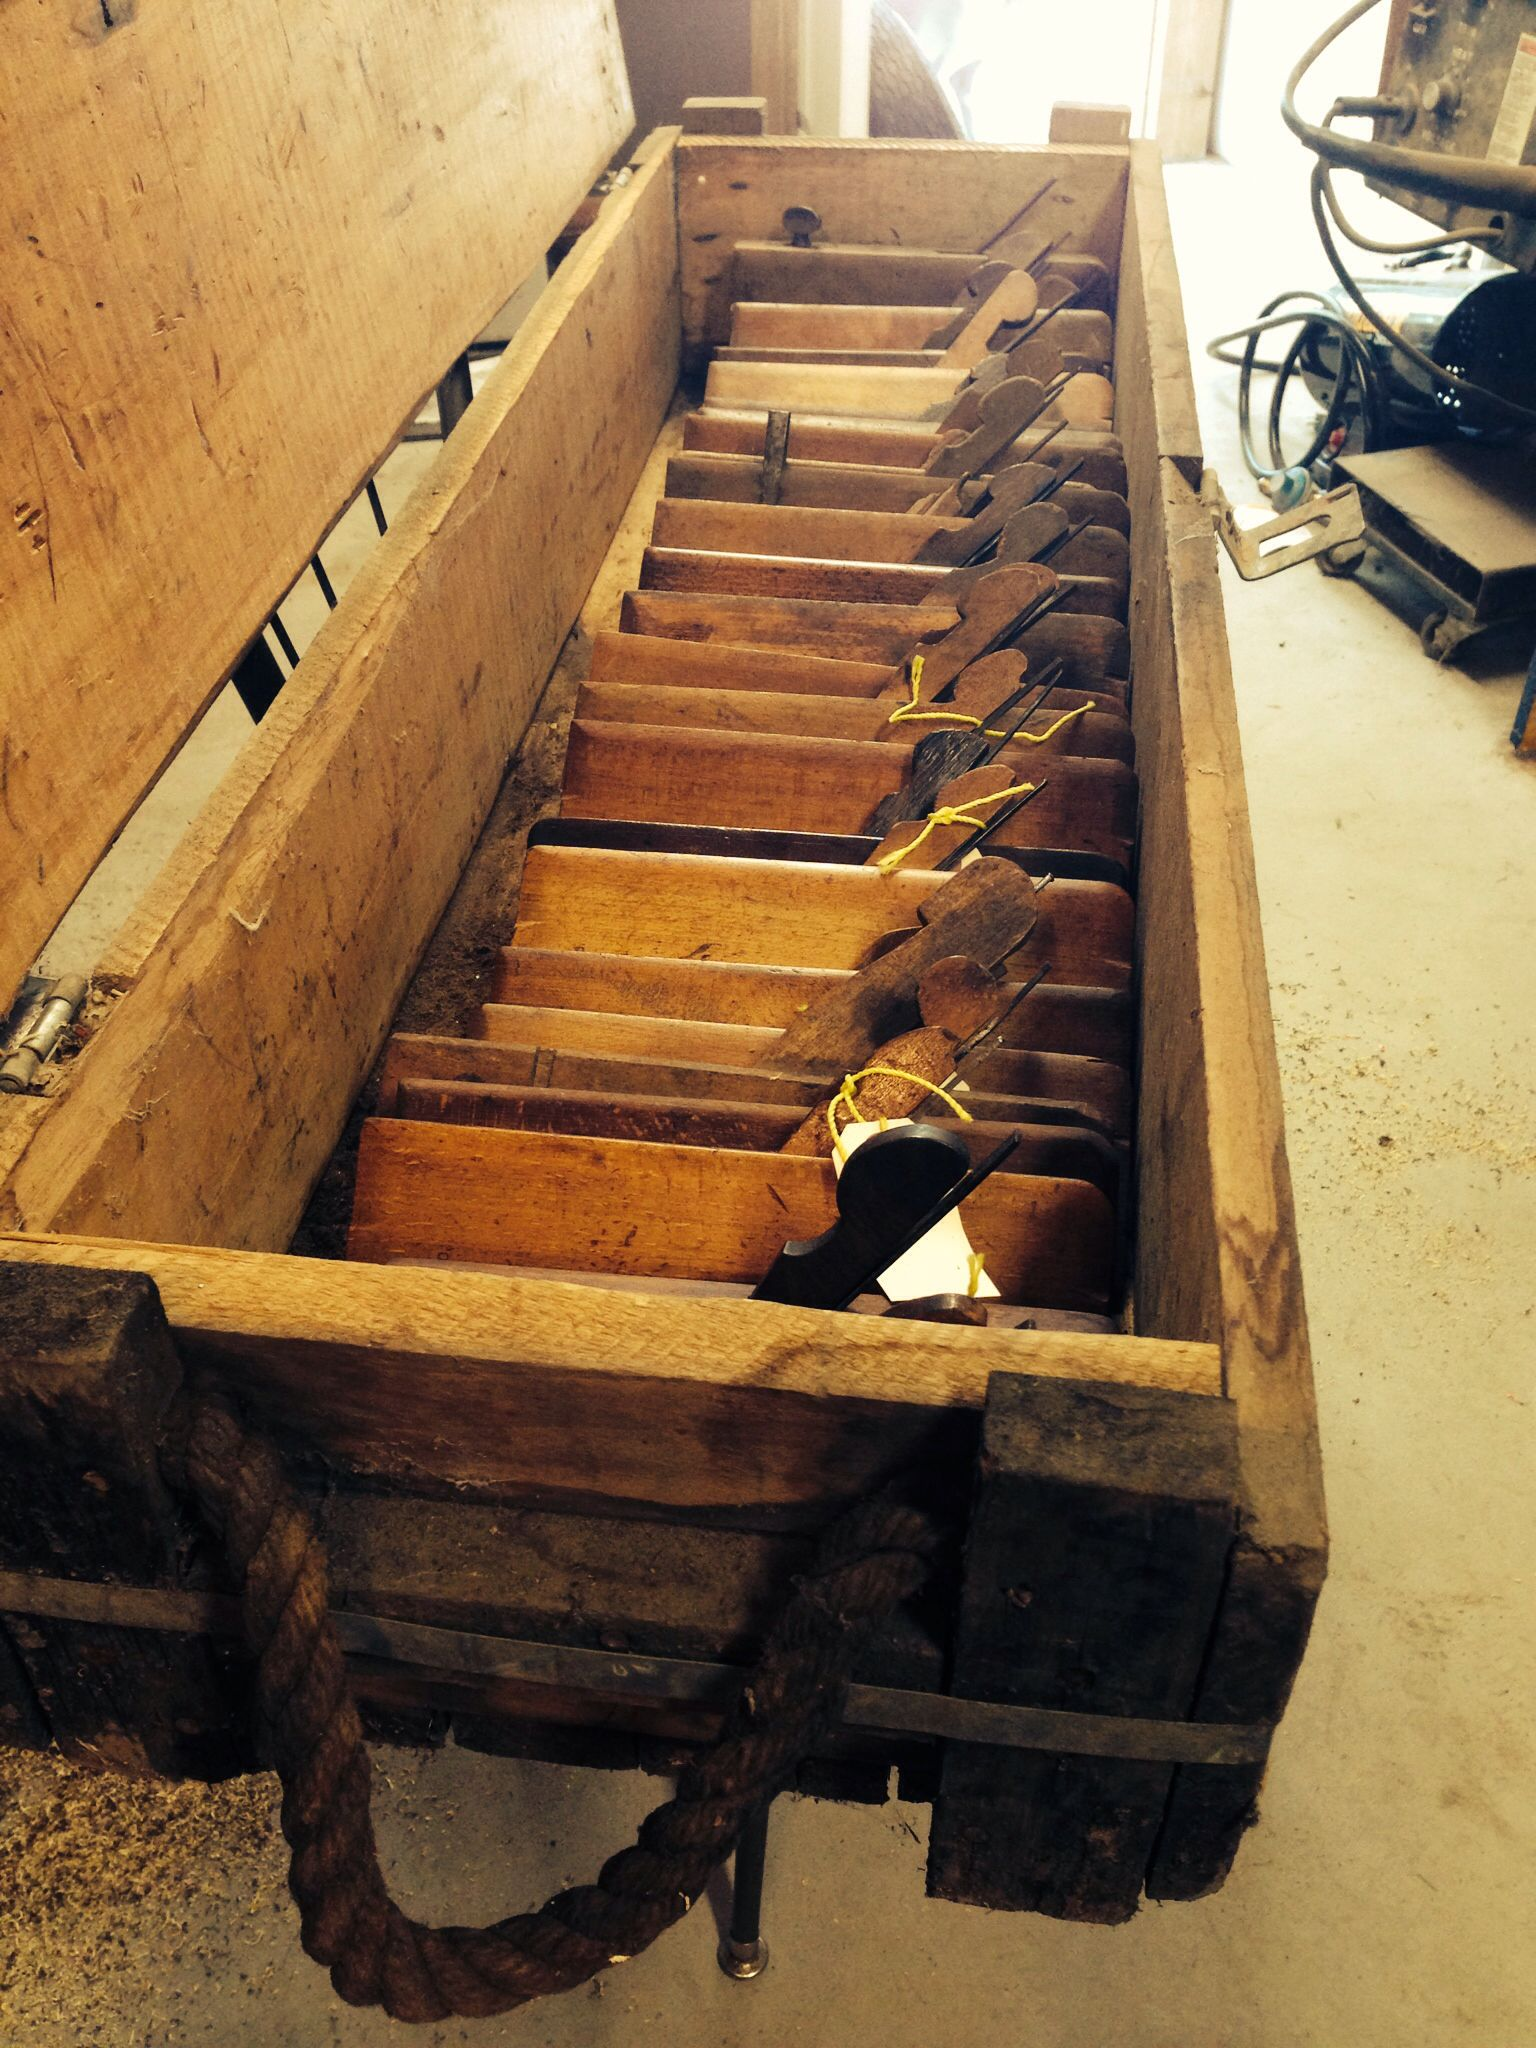 Molding planes Antique woodworking tools, Woodworking tools for sale, Woodworking hand tools